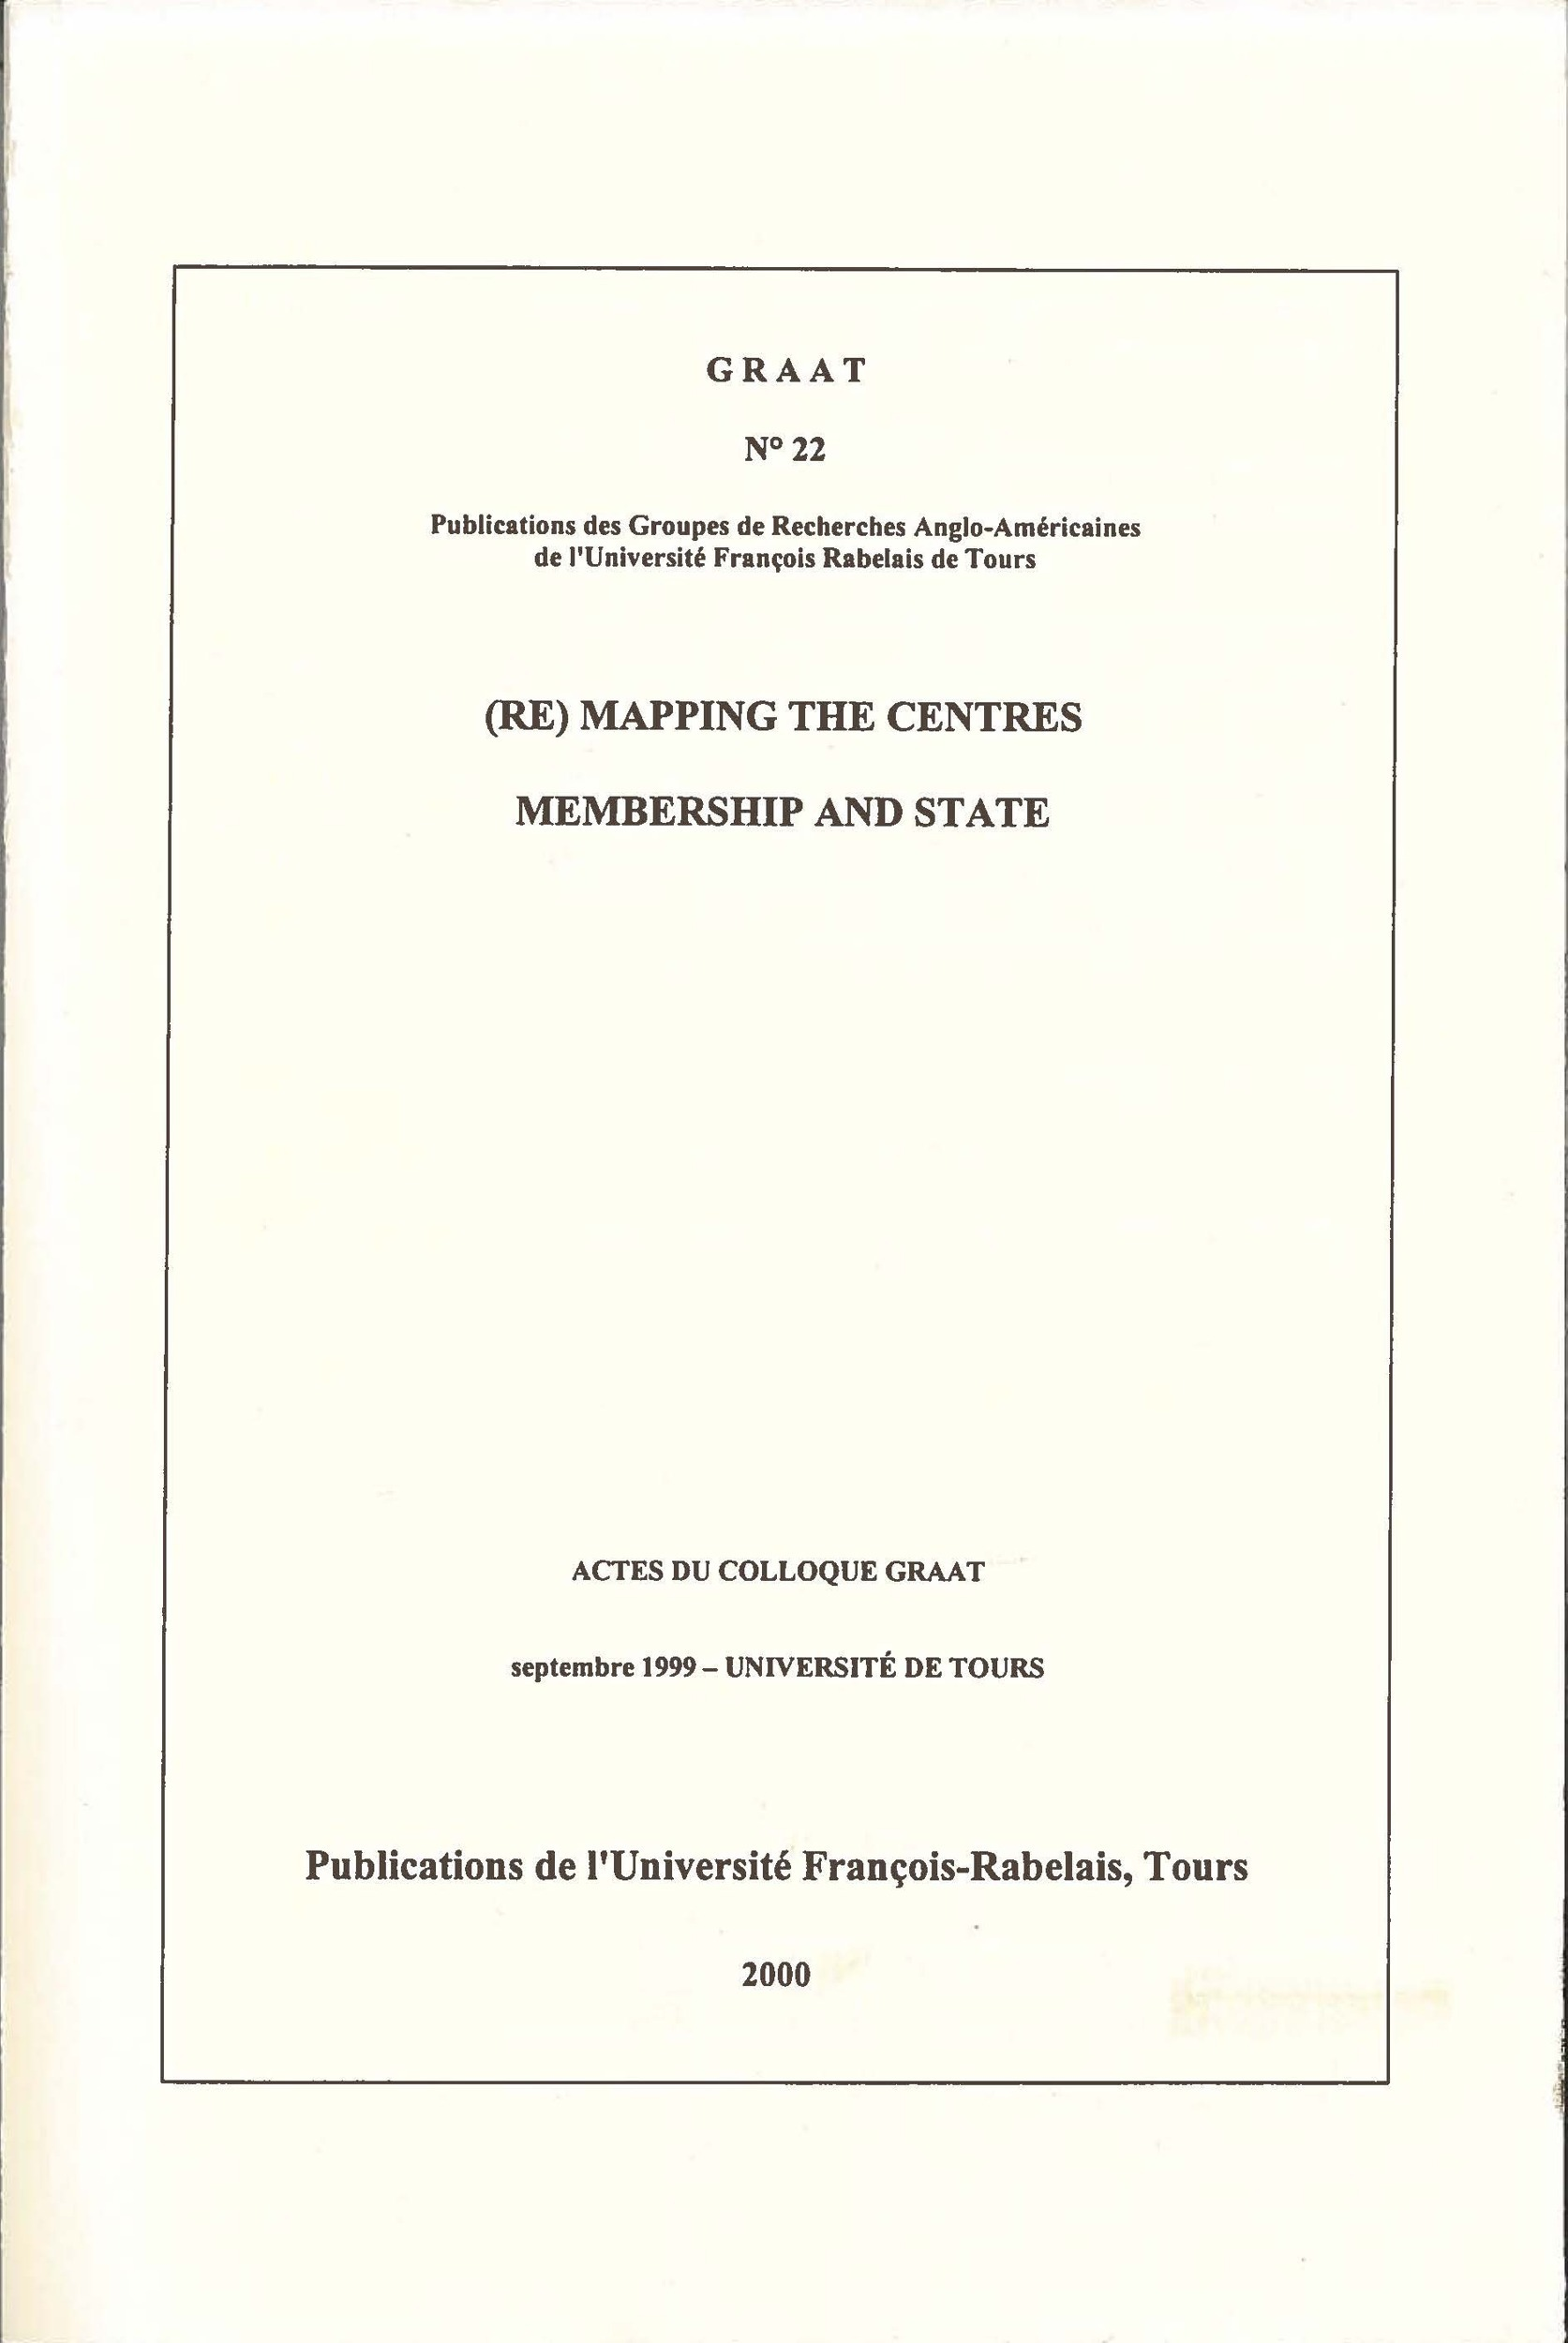 (Re)Mapping the centres Membership and State